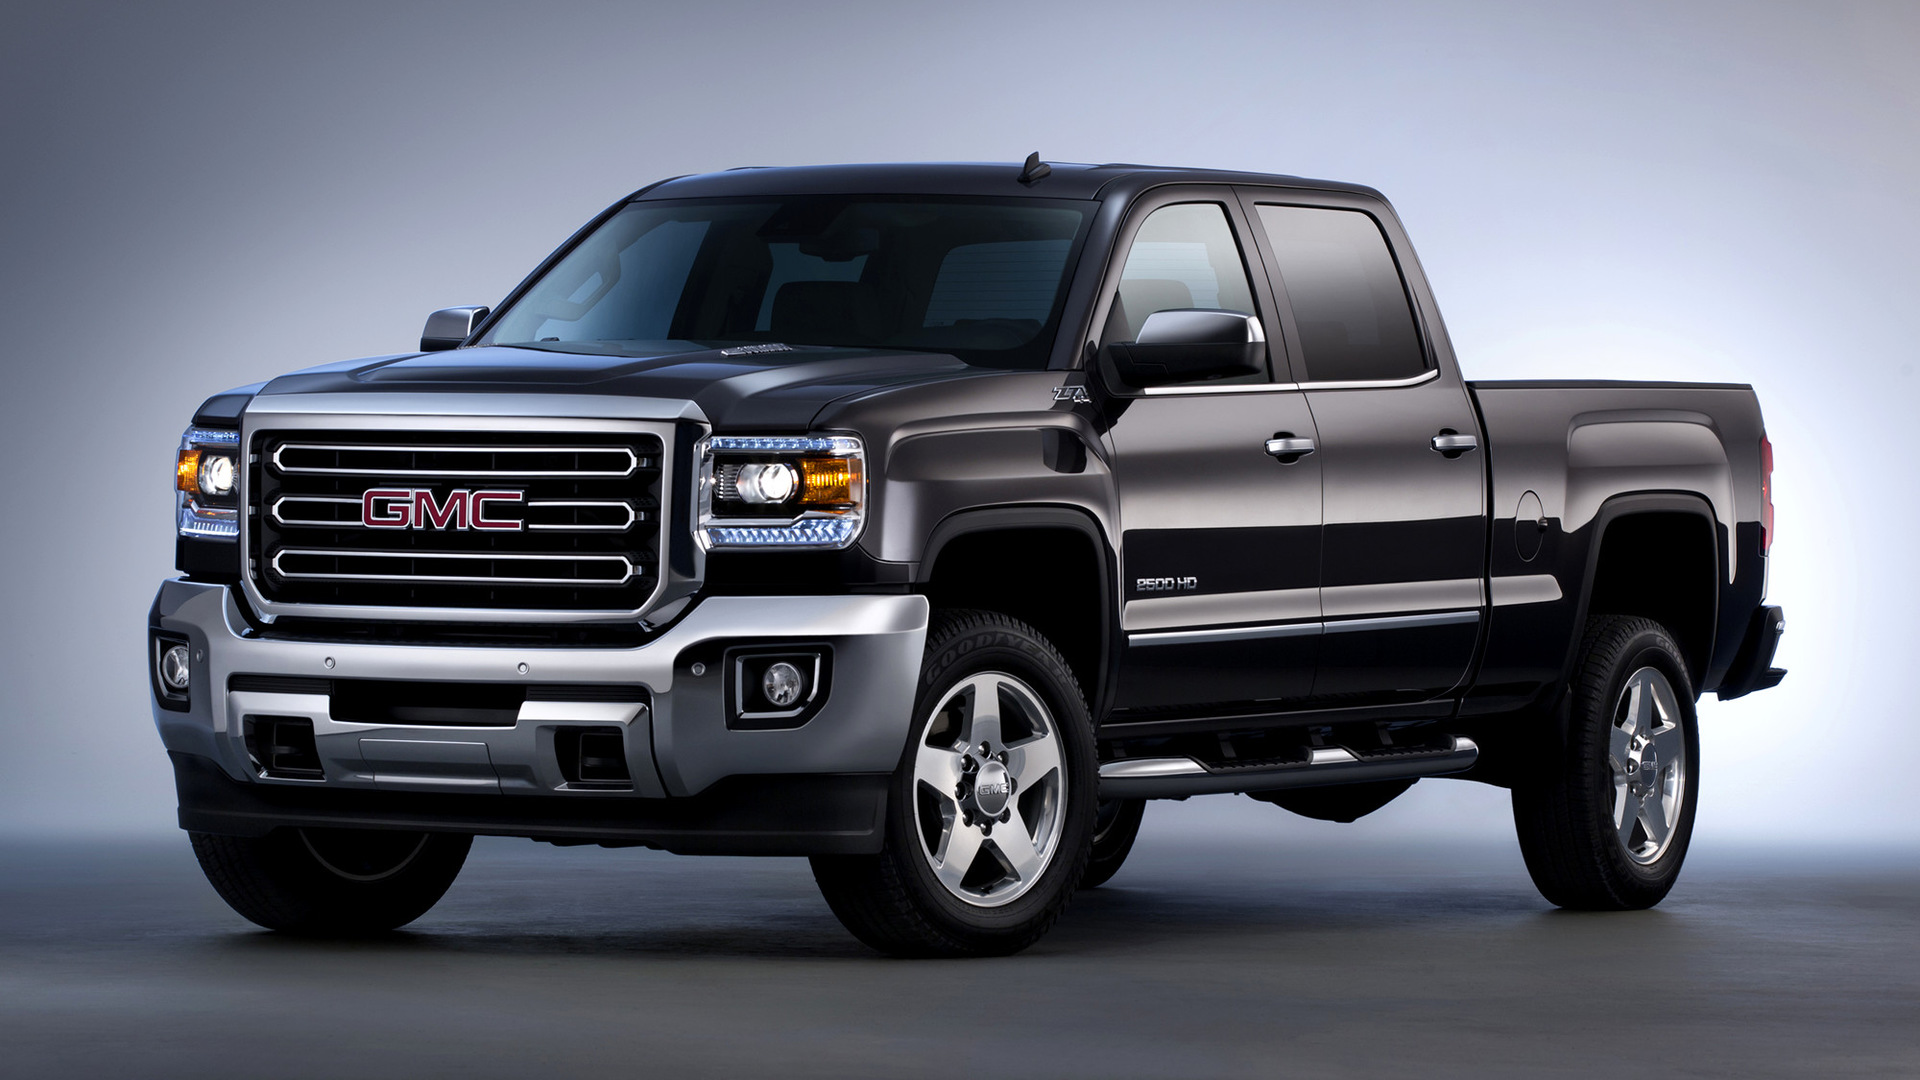 2015 GMC Sierra 2500 HD SLT Crew Cab - Wallpapers and HD ...